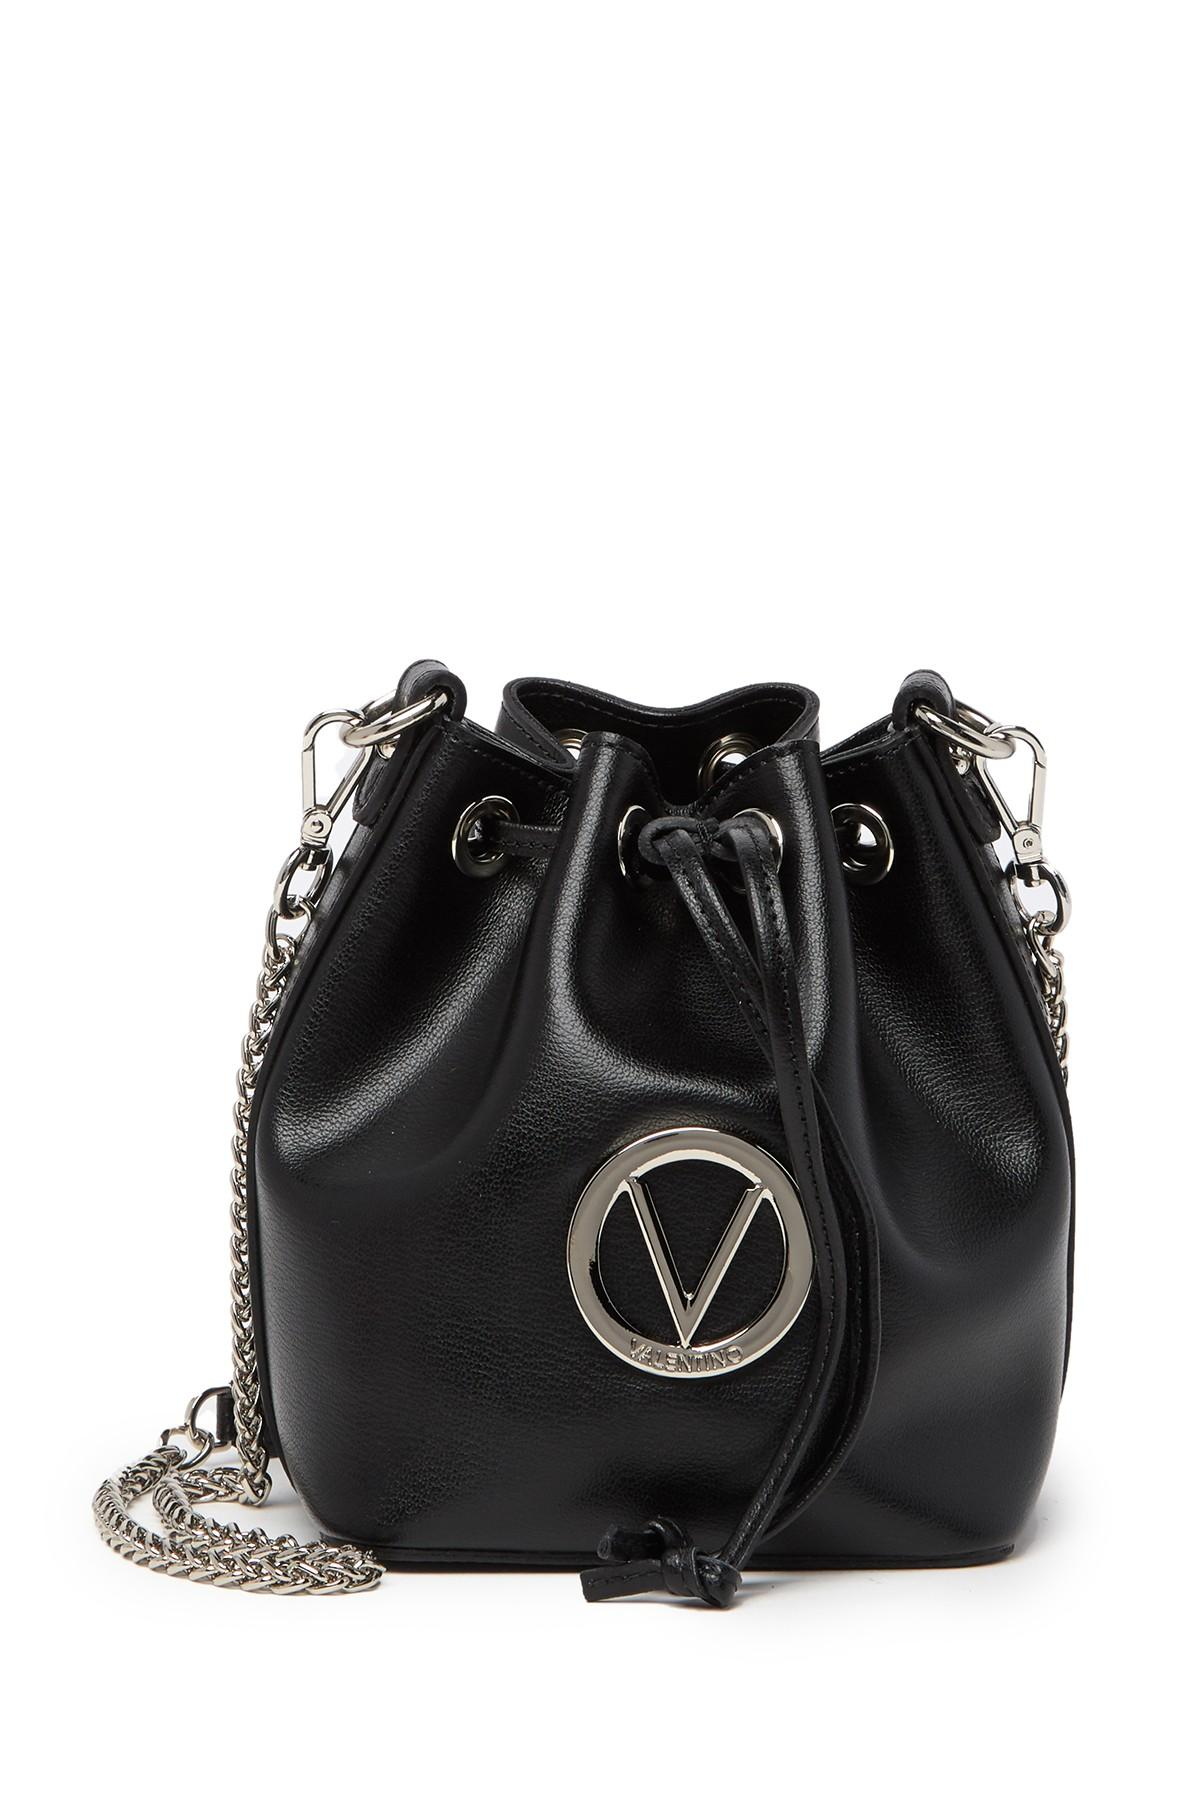 56ff828feda Lyst - Valentino By Mario Valentino Jules Leather Bucket Bag in Black